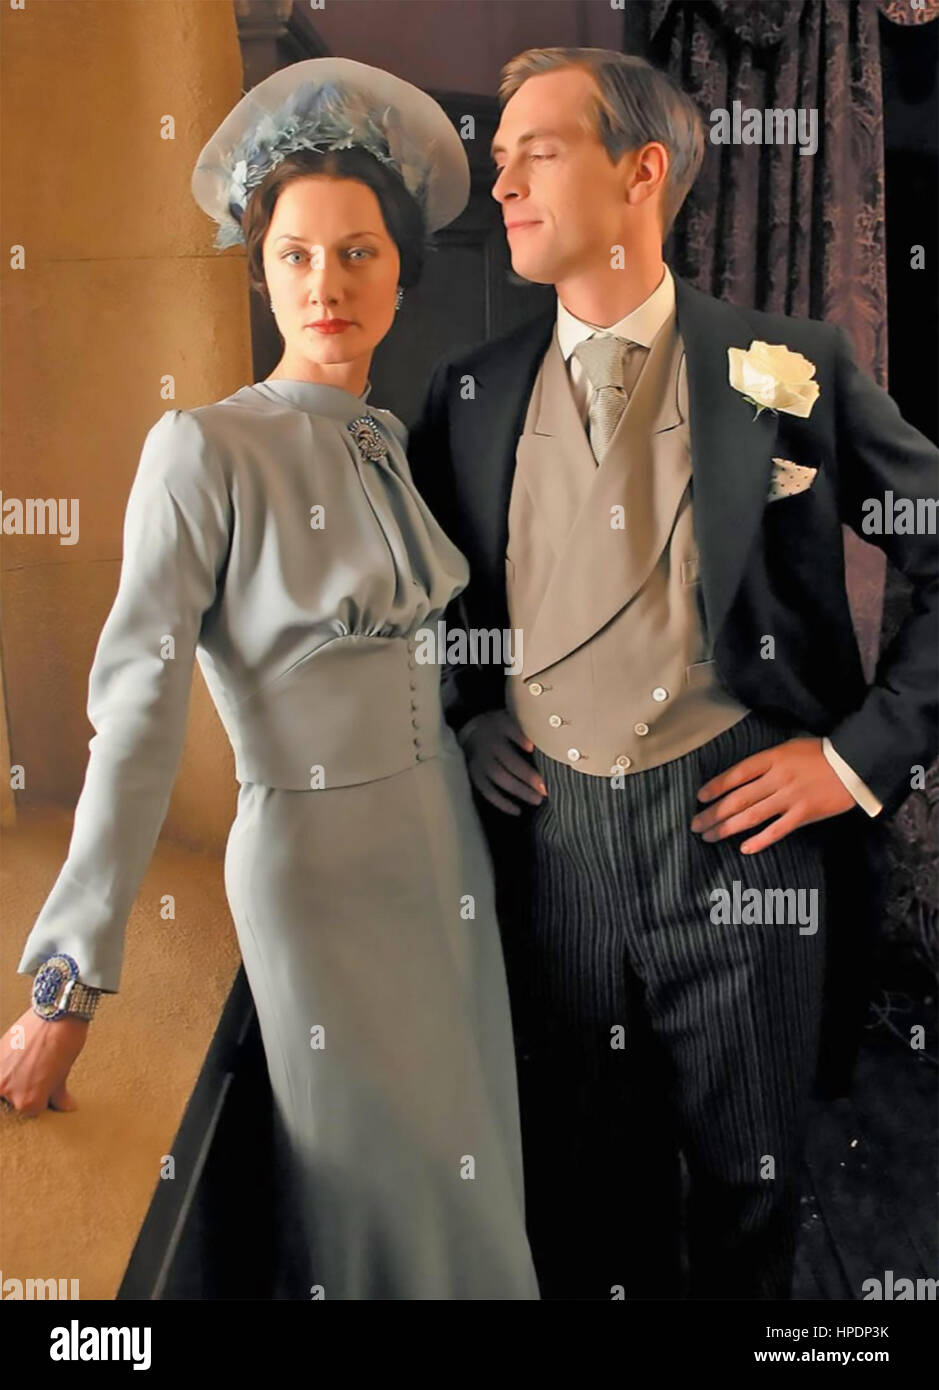 WALLIS & EDWARD 2005 Atlantic Film Productions movie with Joely Richardson and Stephen Campbell Moore - Stock Image